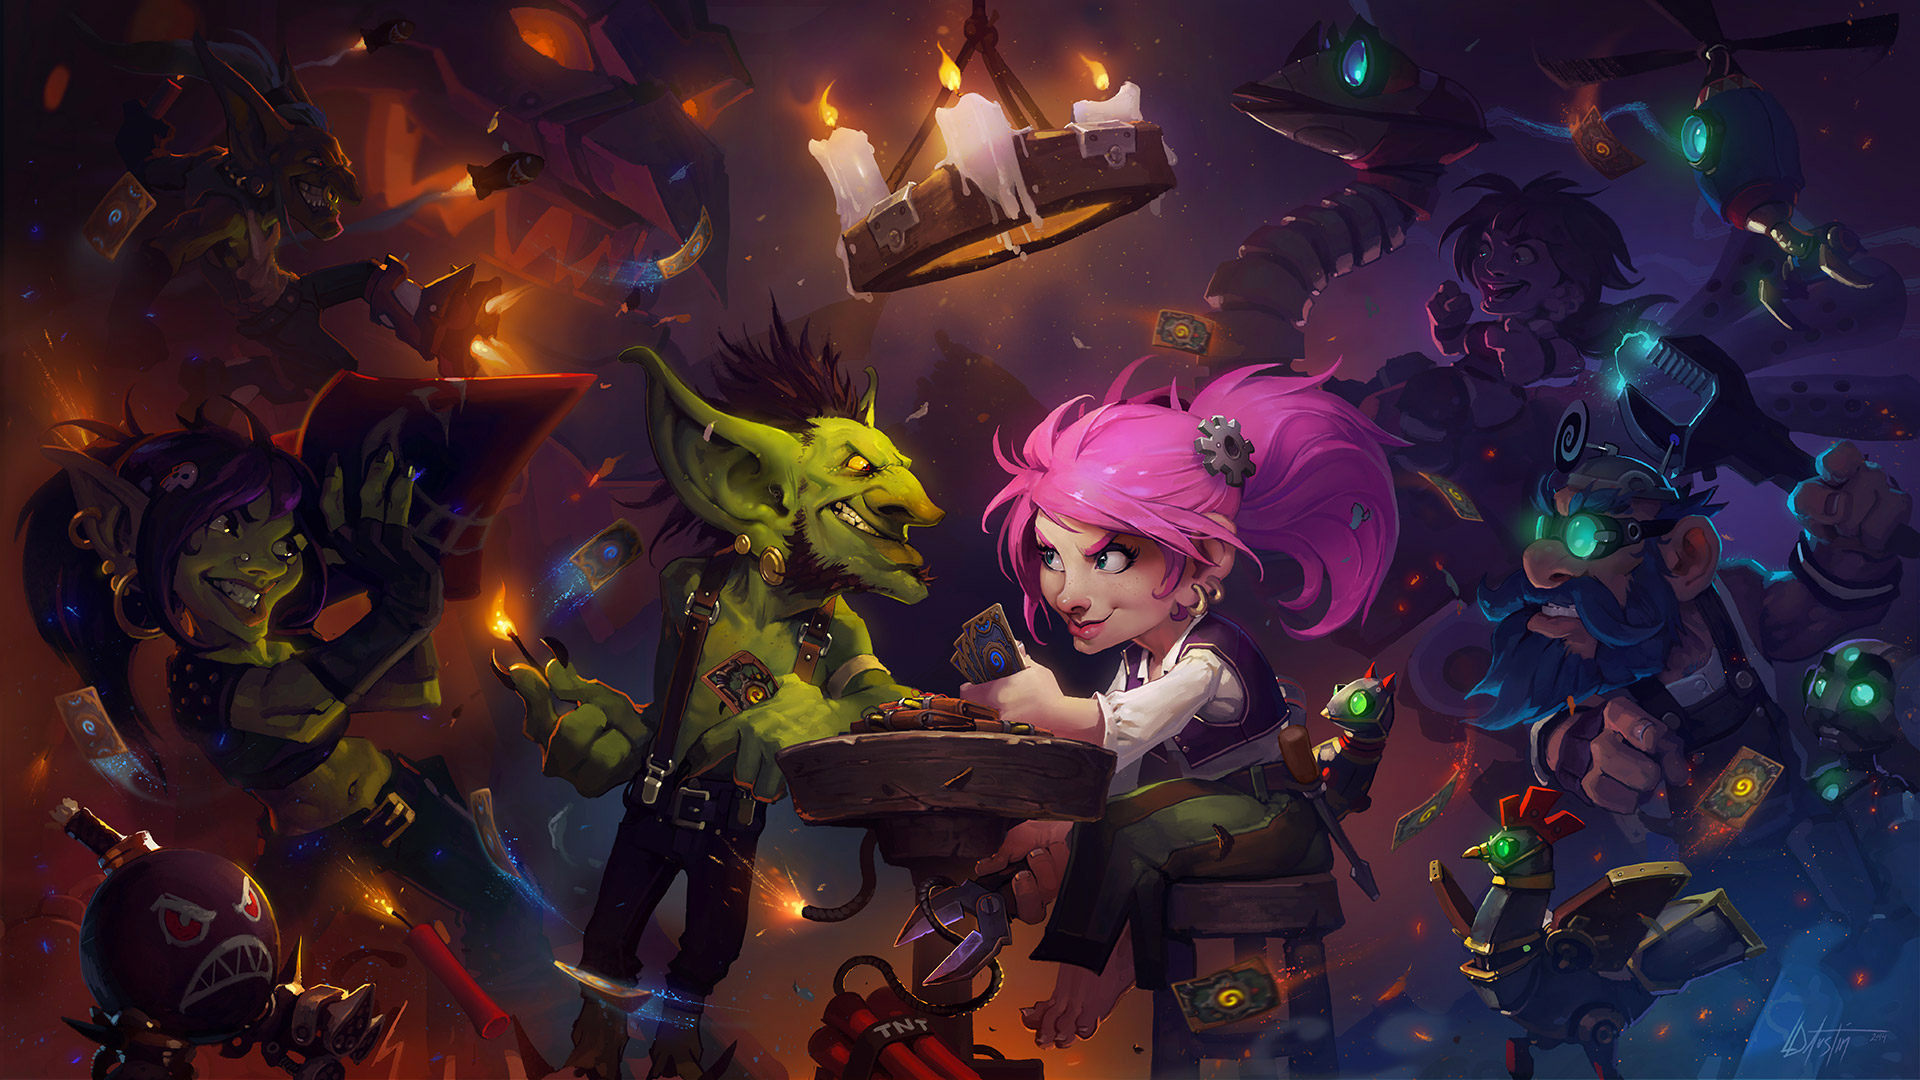 Hearthstone players can check out Goblins vs. Gnomes expansion cards right now